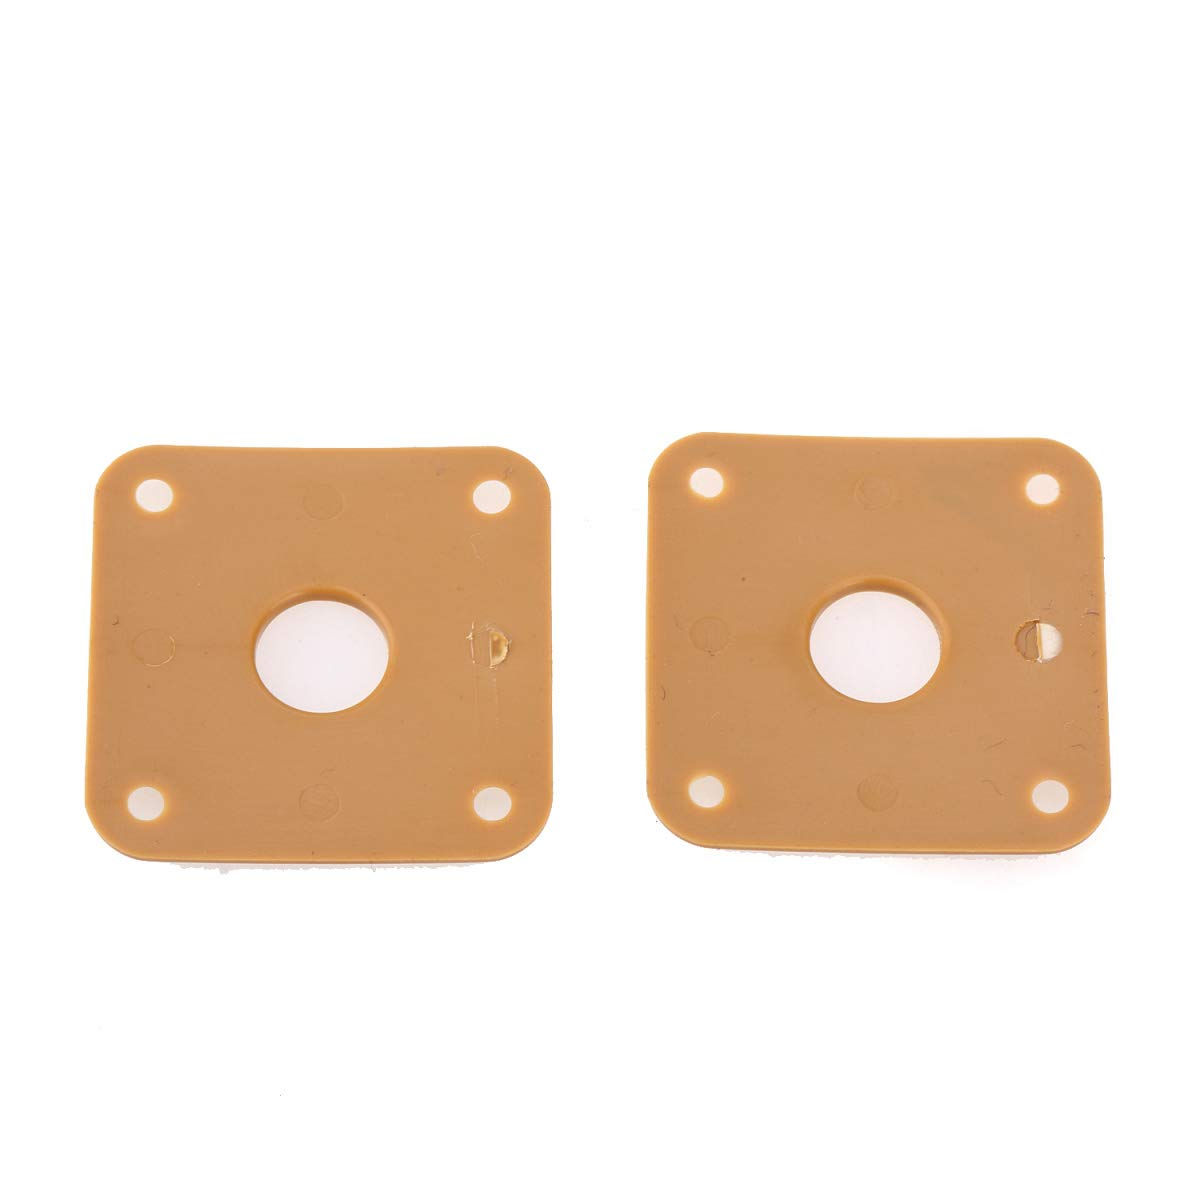 Cream Set of 2 Musiclily Pro Plastic Curved Jack Plate Square Jackplate for Gibson Epiphone Les Paul Guitar